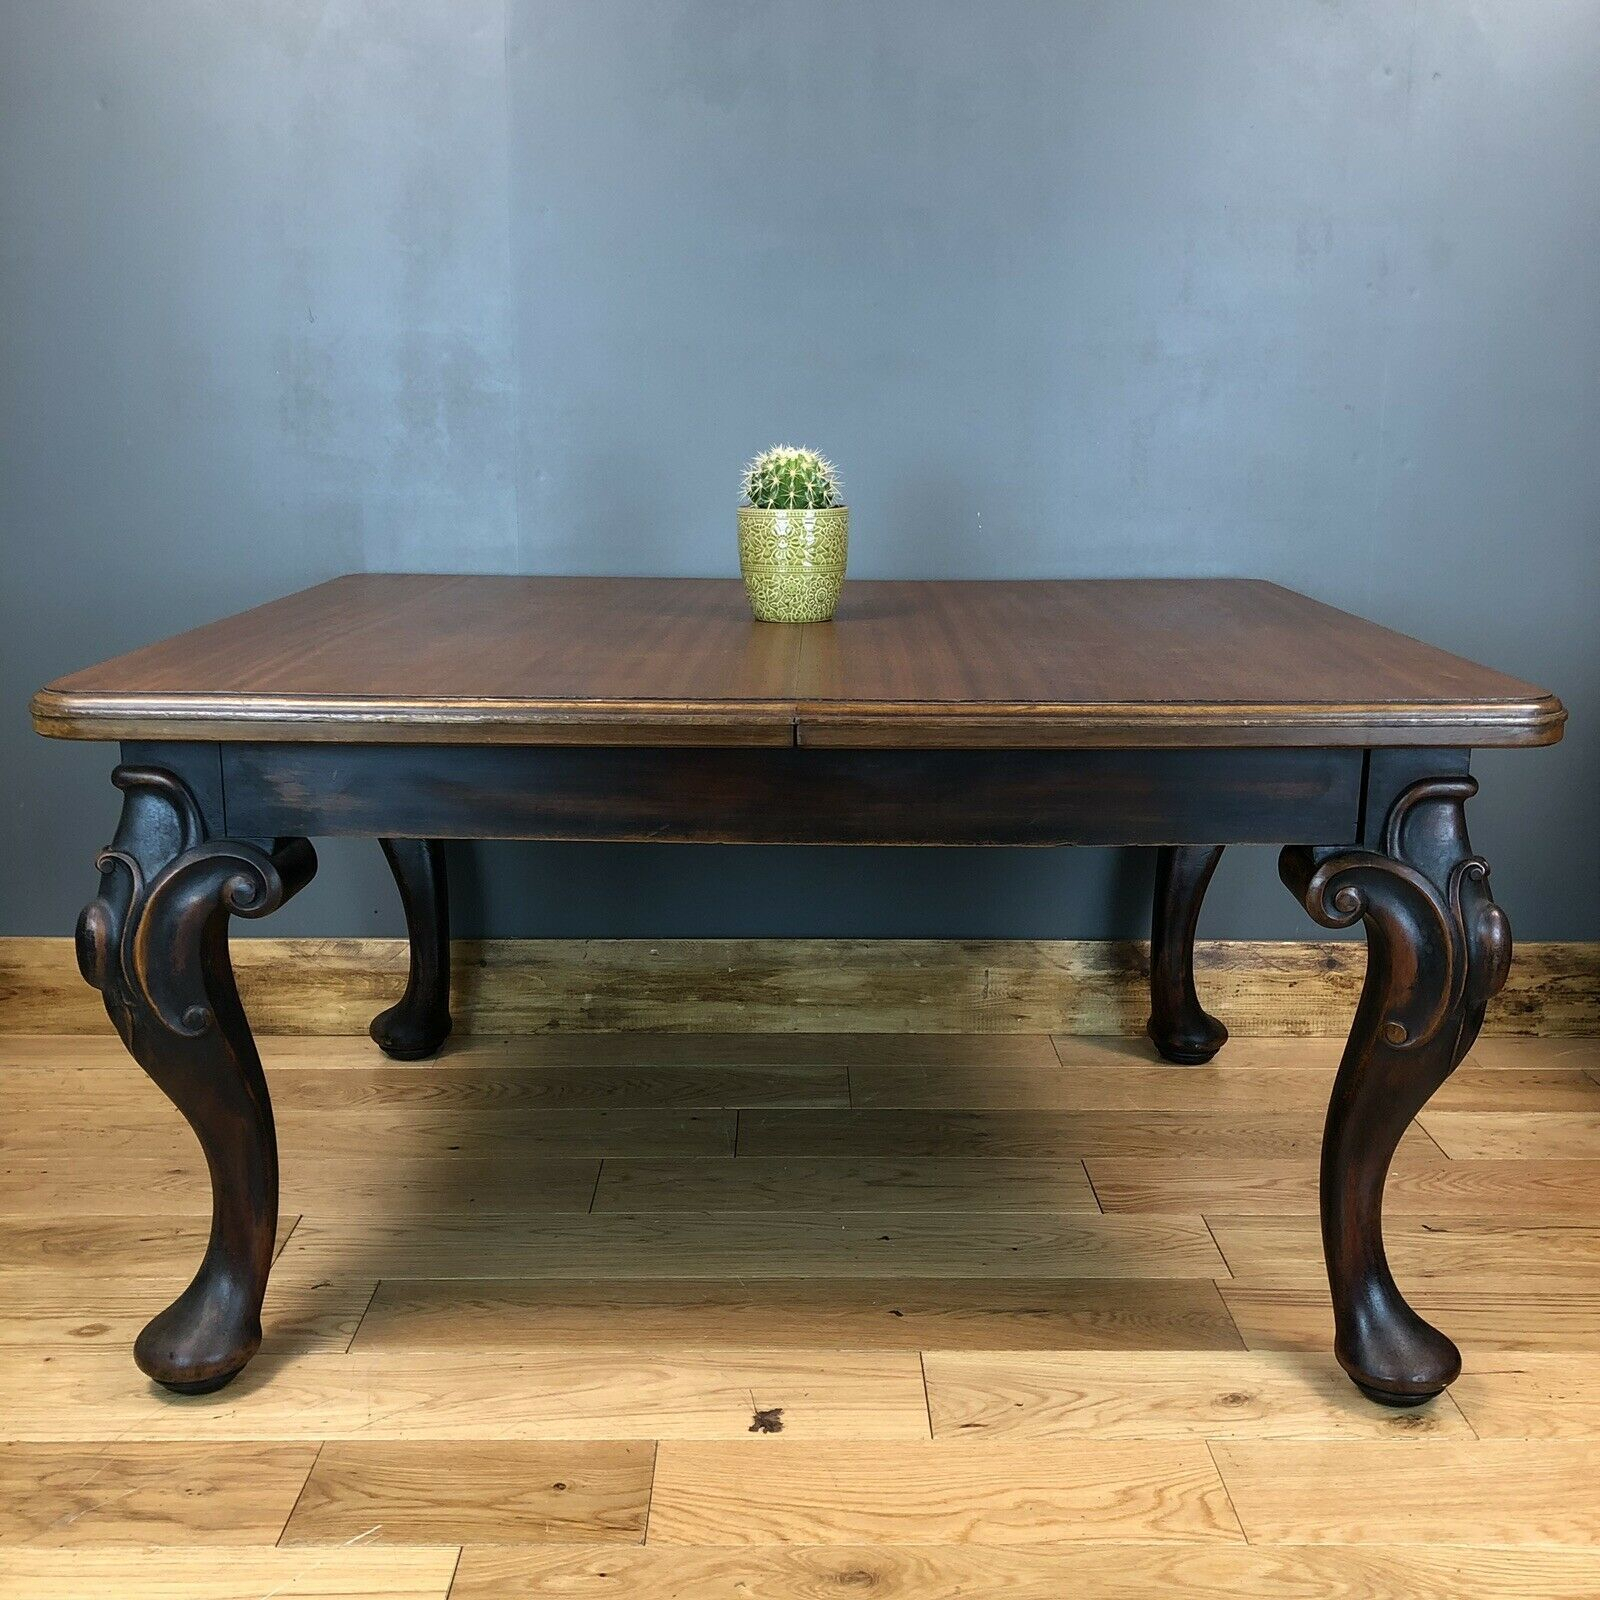 Vintage Antique Mahogany Extending Dining Table Kitchen Rustic Farmhouse In Latest Rustic Mahogany Extending Dining Tables (View 3 of 25)